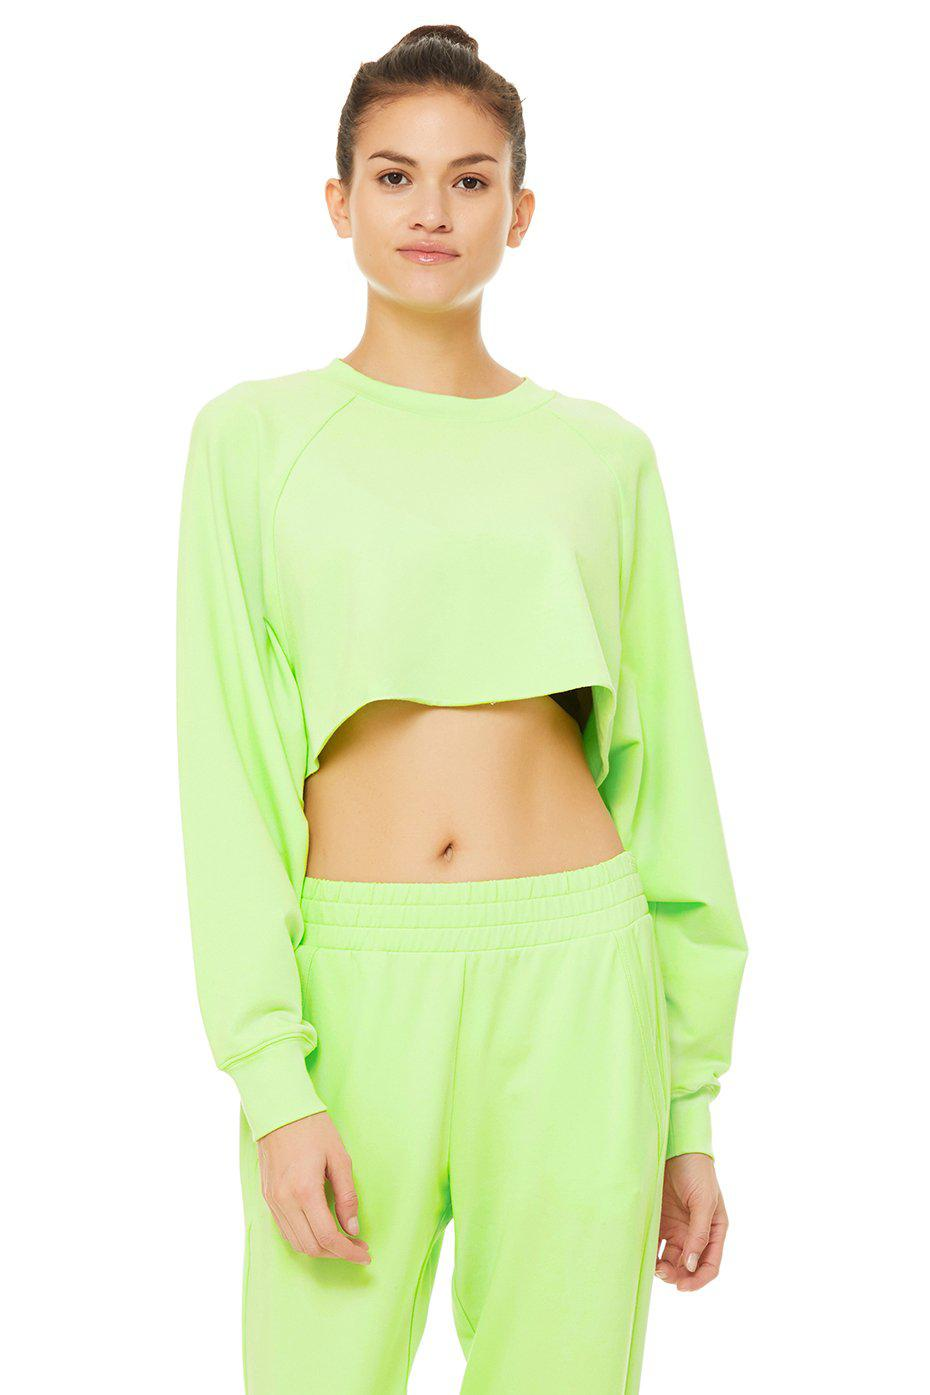 Double Take Pullover - Neon Lime